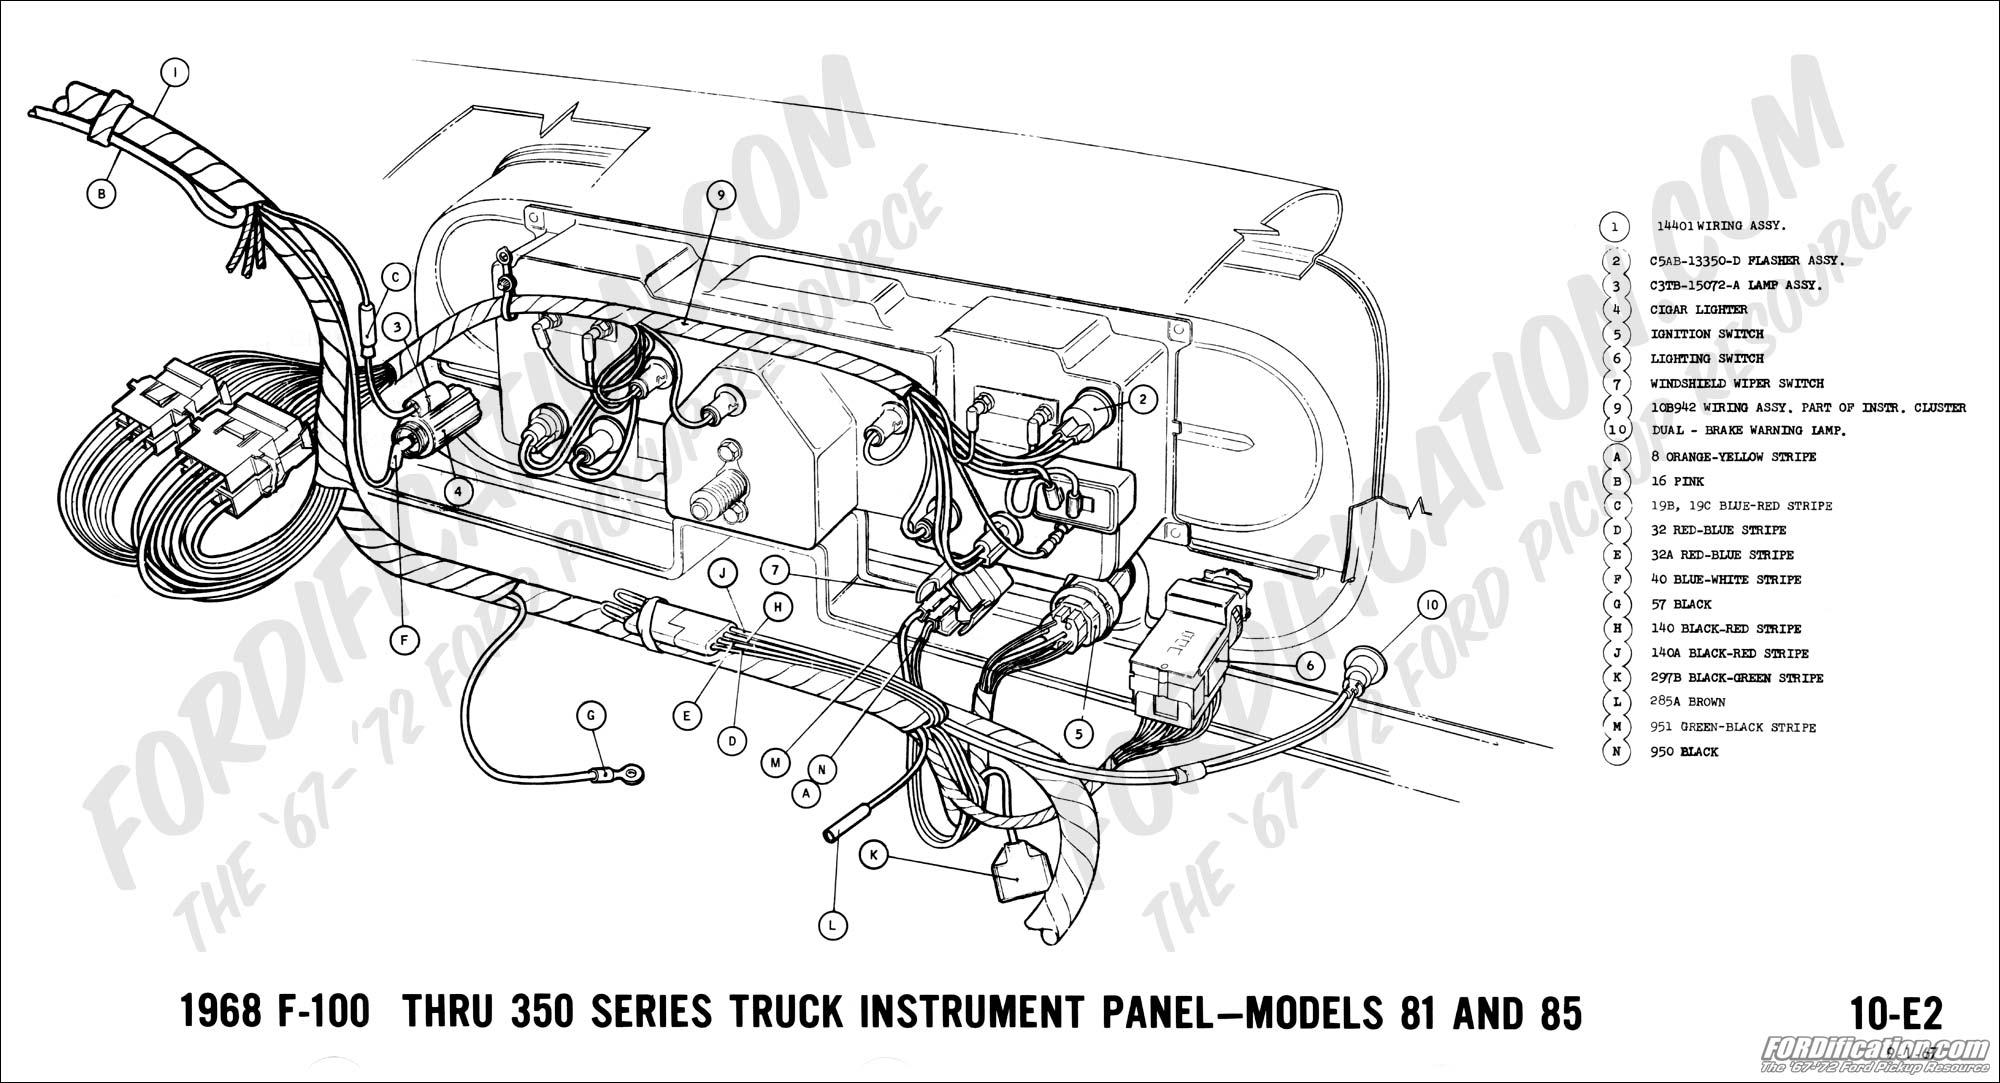 1971 Mustang Instrument Cluster Wiring Diagram Product Wiring Ford 302 68 Wiring  1969 Cougar Ignition Wiring Diagram